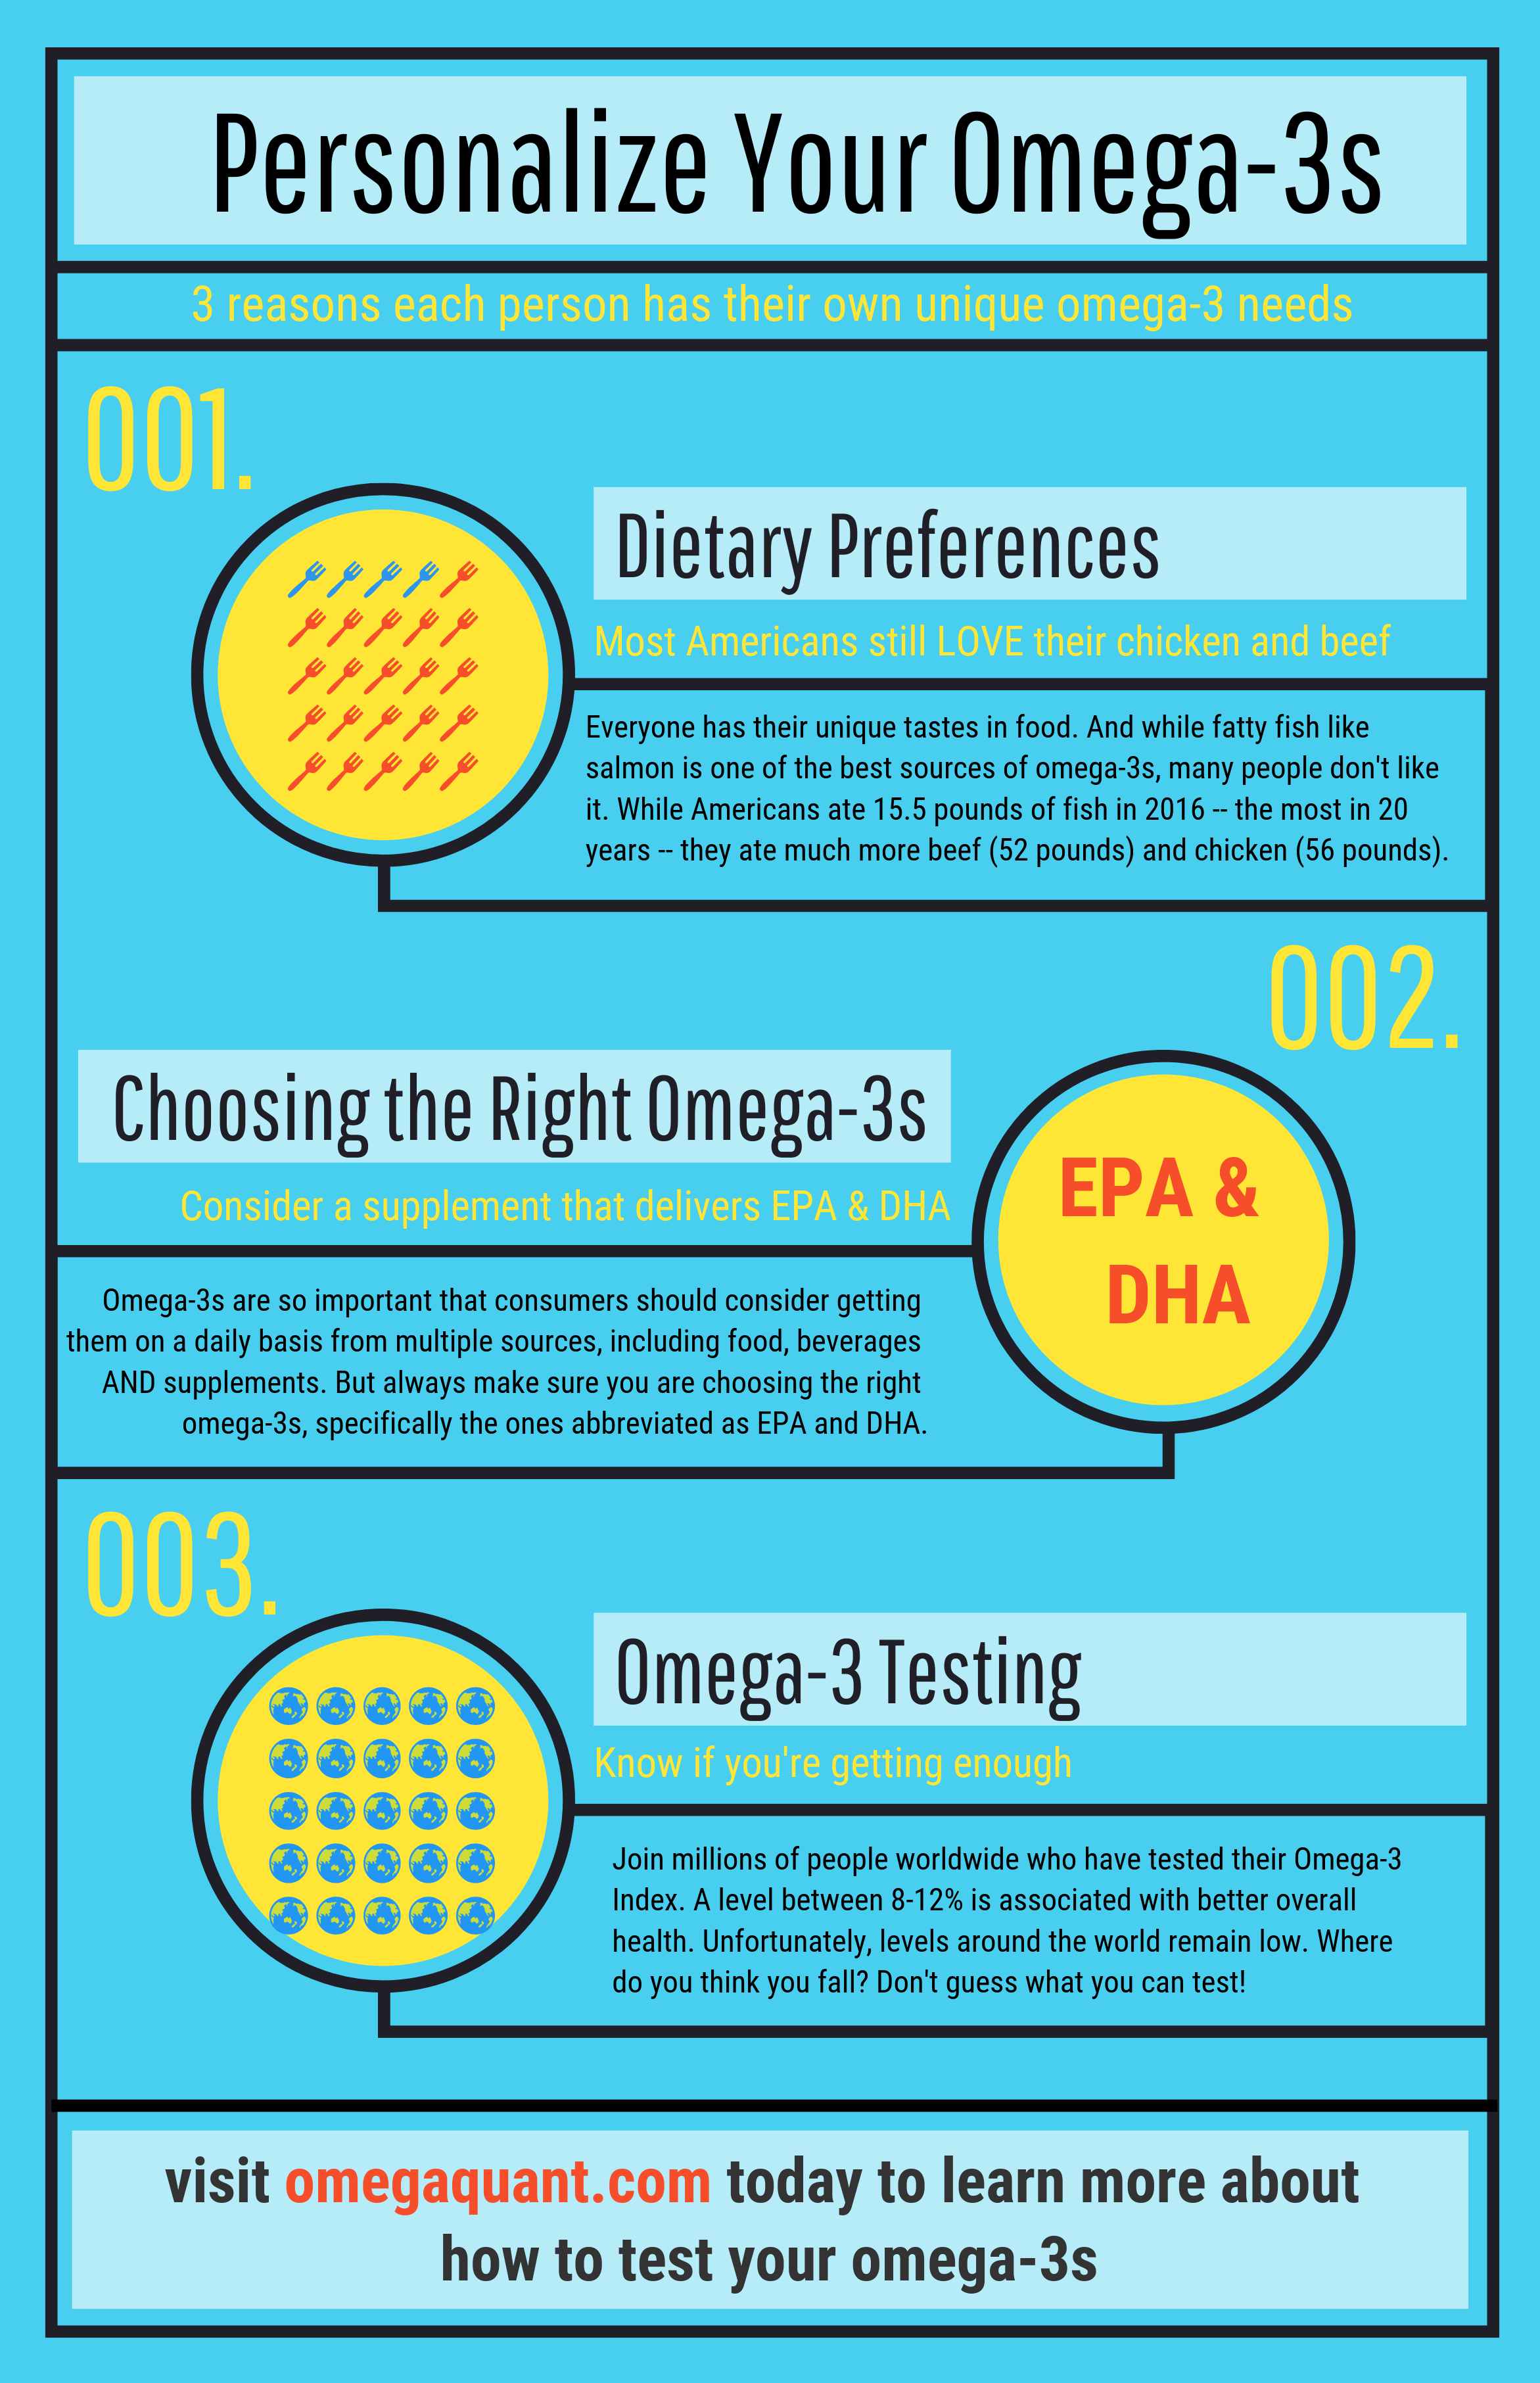 how to get the right omega-3s